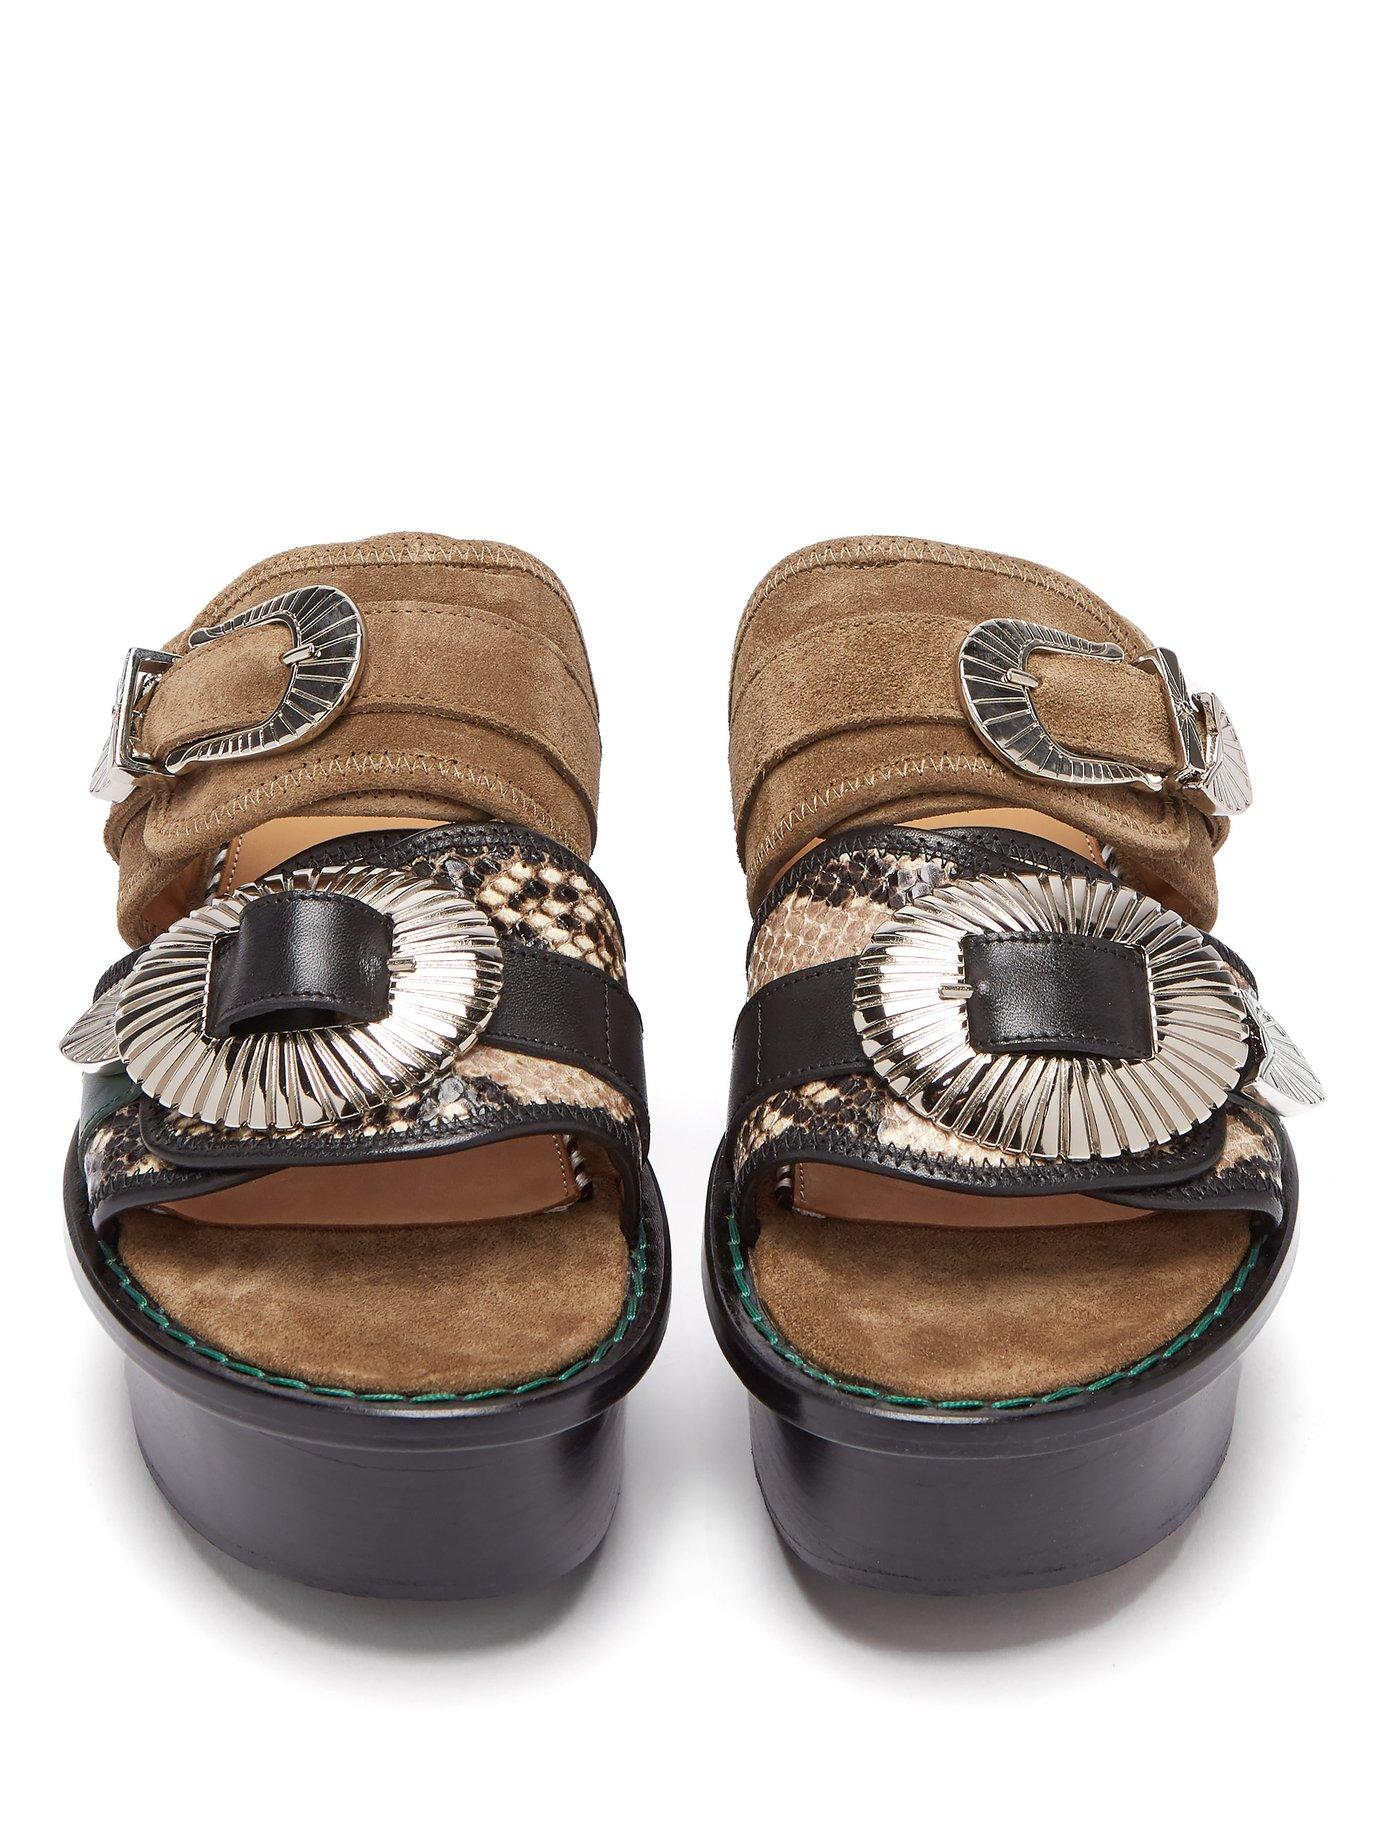 a040287cdd8 Toga - Multicolor Double Strap Suede And Leather Flatform Sandals - Lyst.  View fullscreen